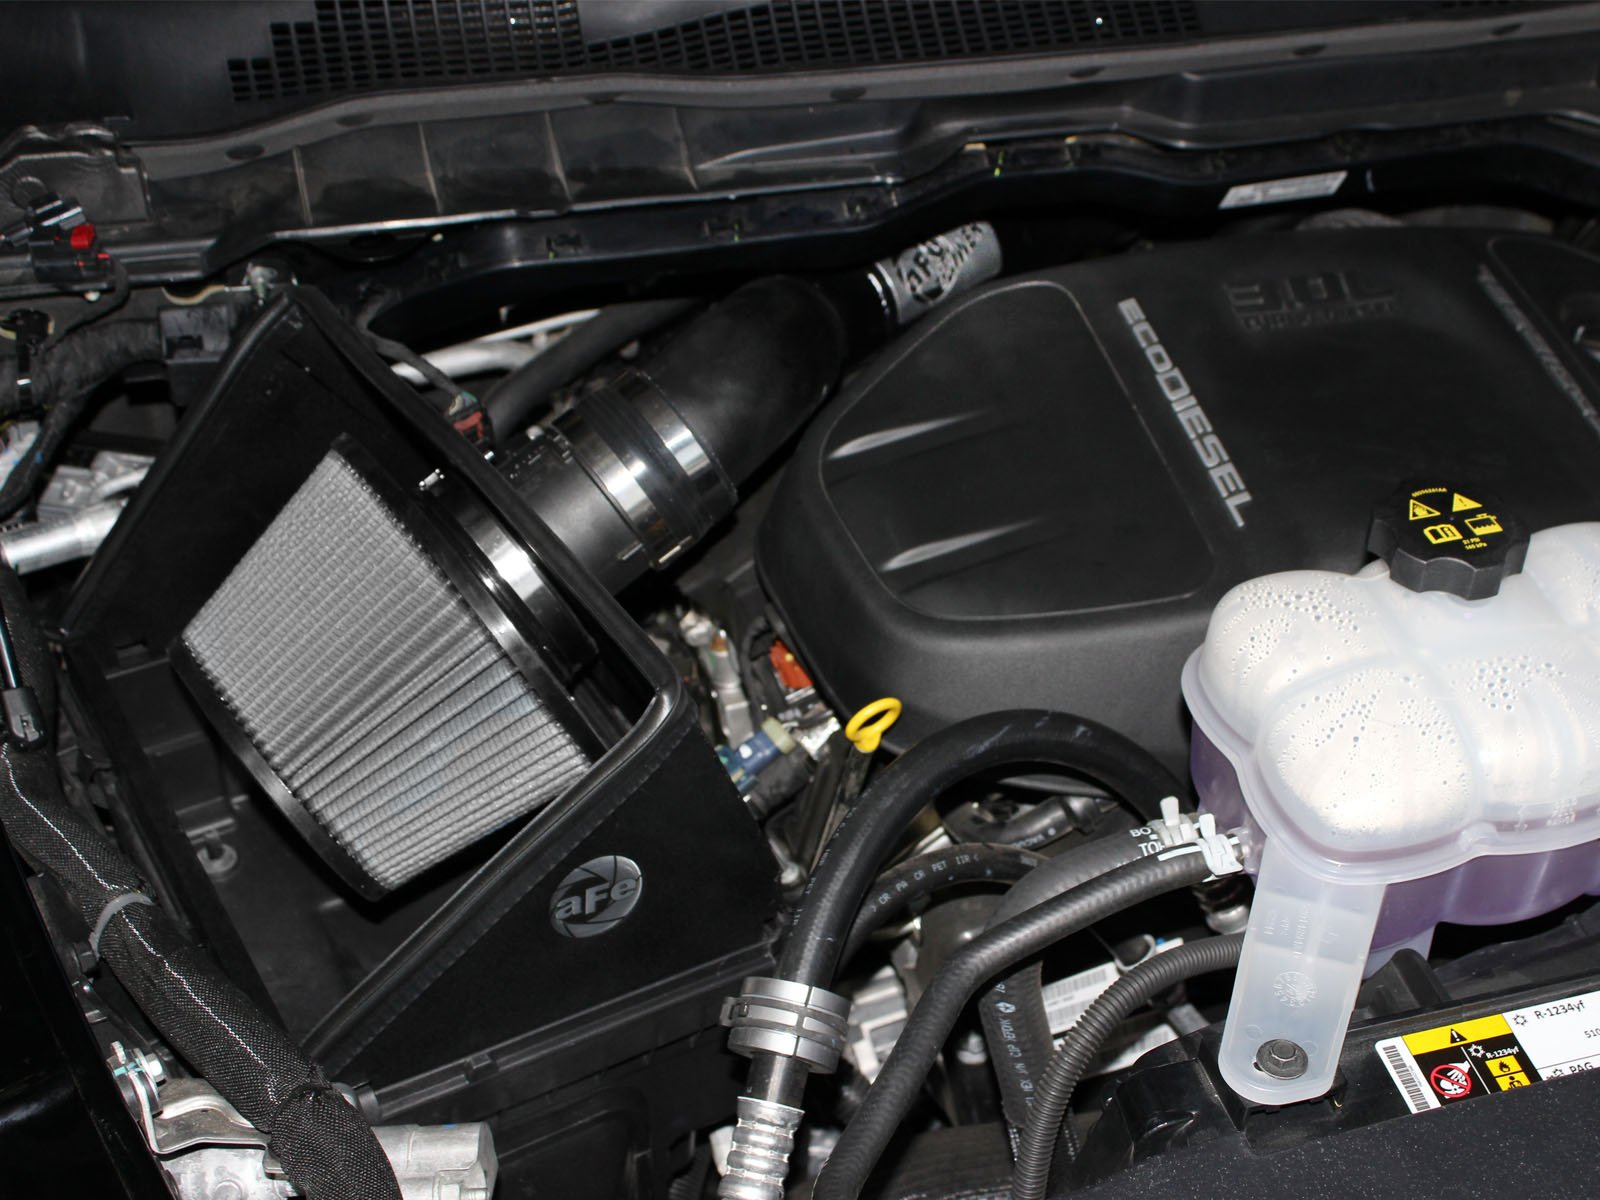 aFe Power Magnum FORCE 51-32572 RAM 1500 EcoDiesel 14-15 V6-3.0L (td) Performance Intake System (Dry, 3-Layer Filter) by aFe (Image #7)